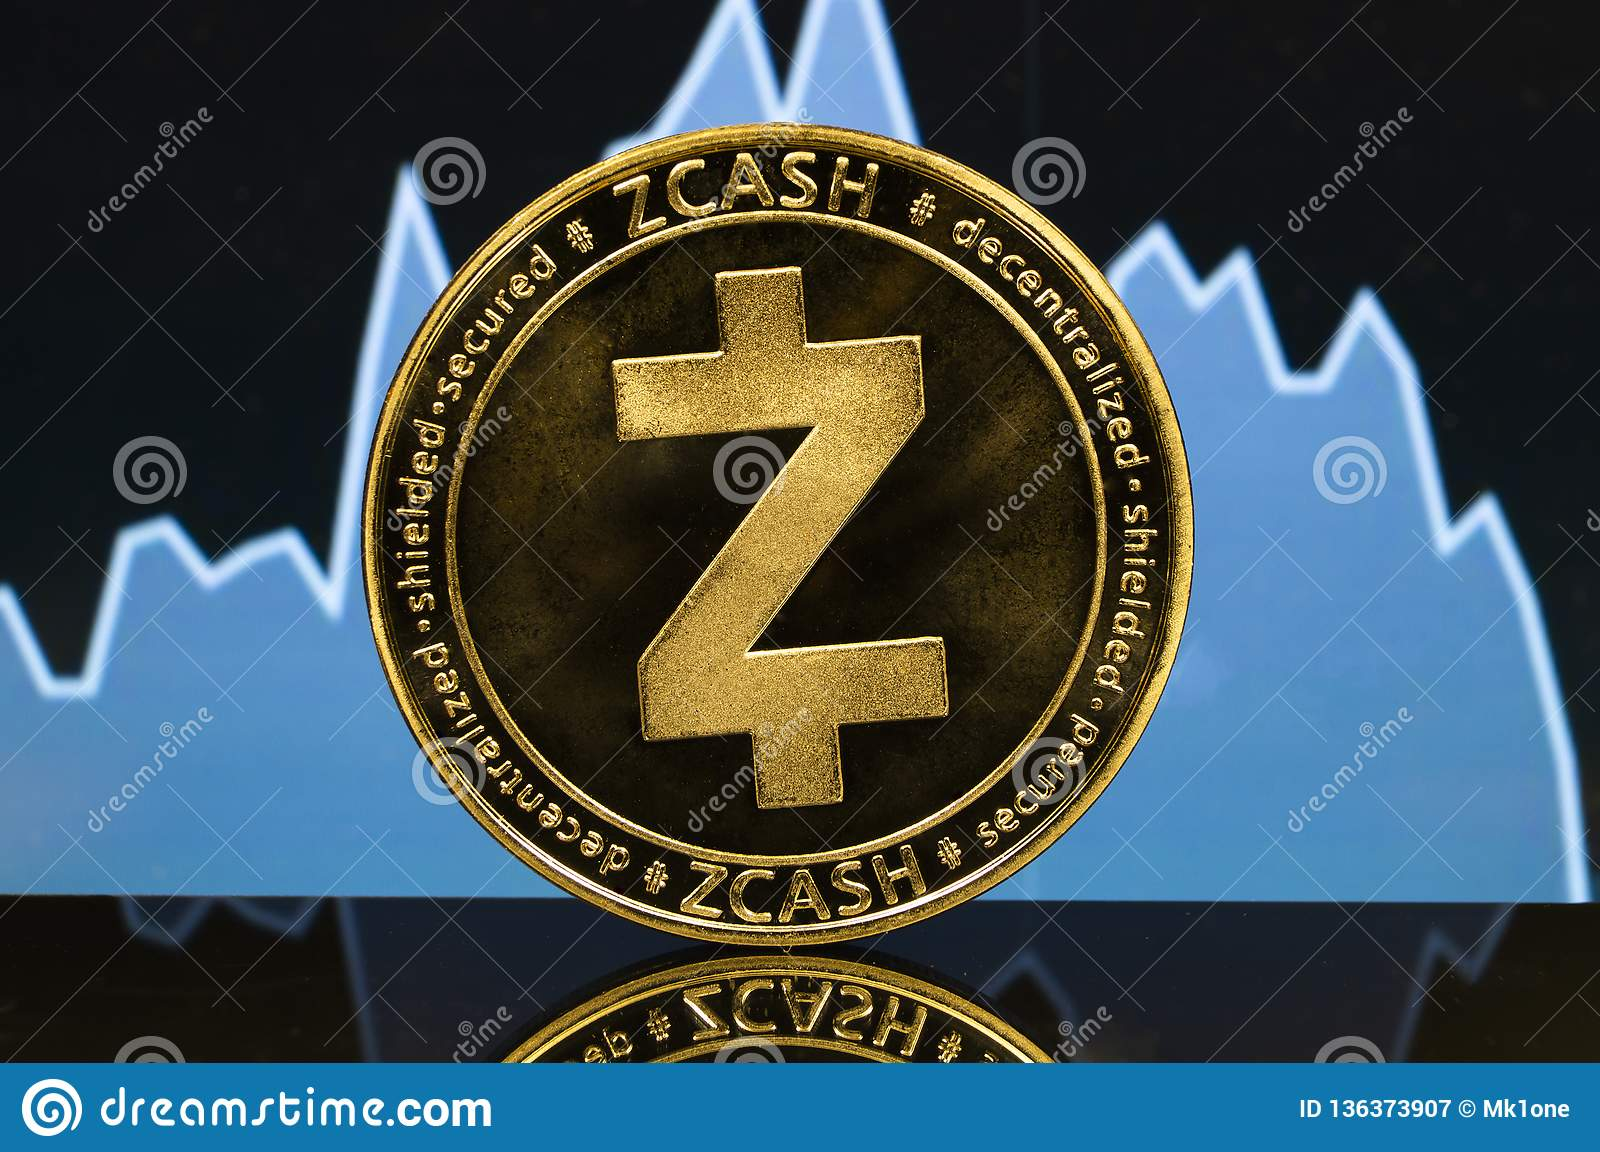 Zcash crypto currency exchange craven stakes 2021 bettingadvice